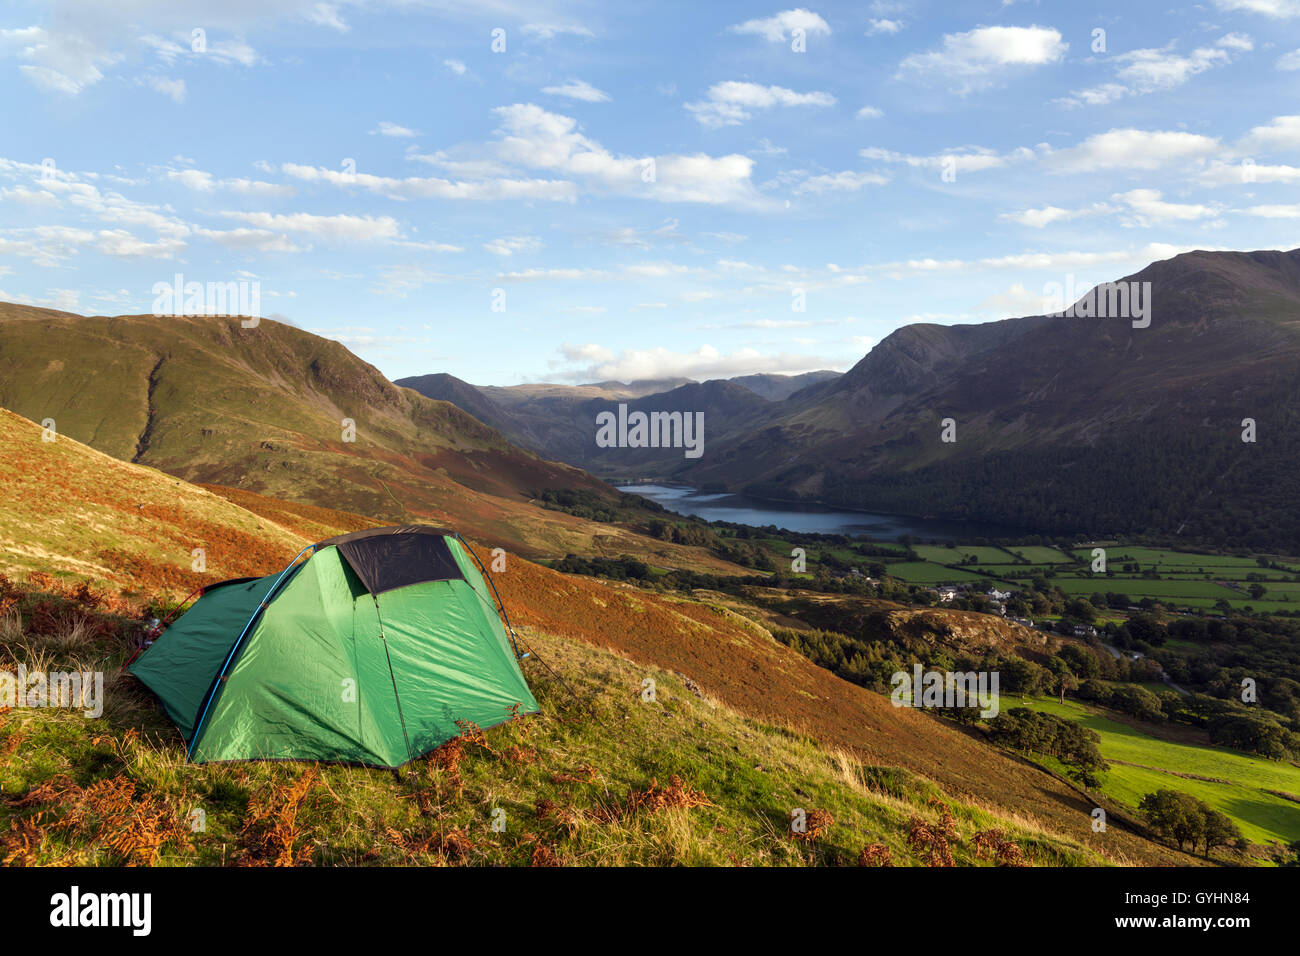 Little green tent, wild camping on Rannerdale Knotts overlooking Buttermere in the English Lake District in early - Stock Image